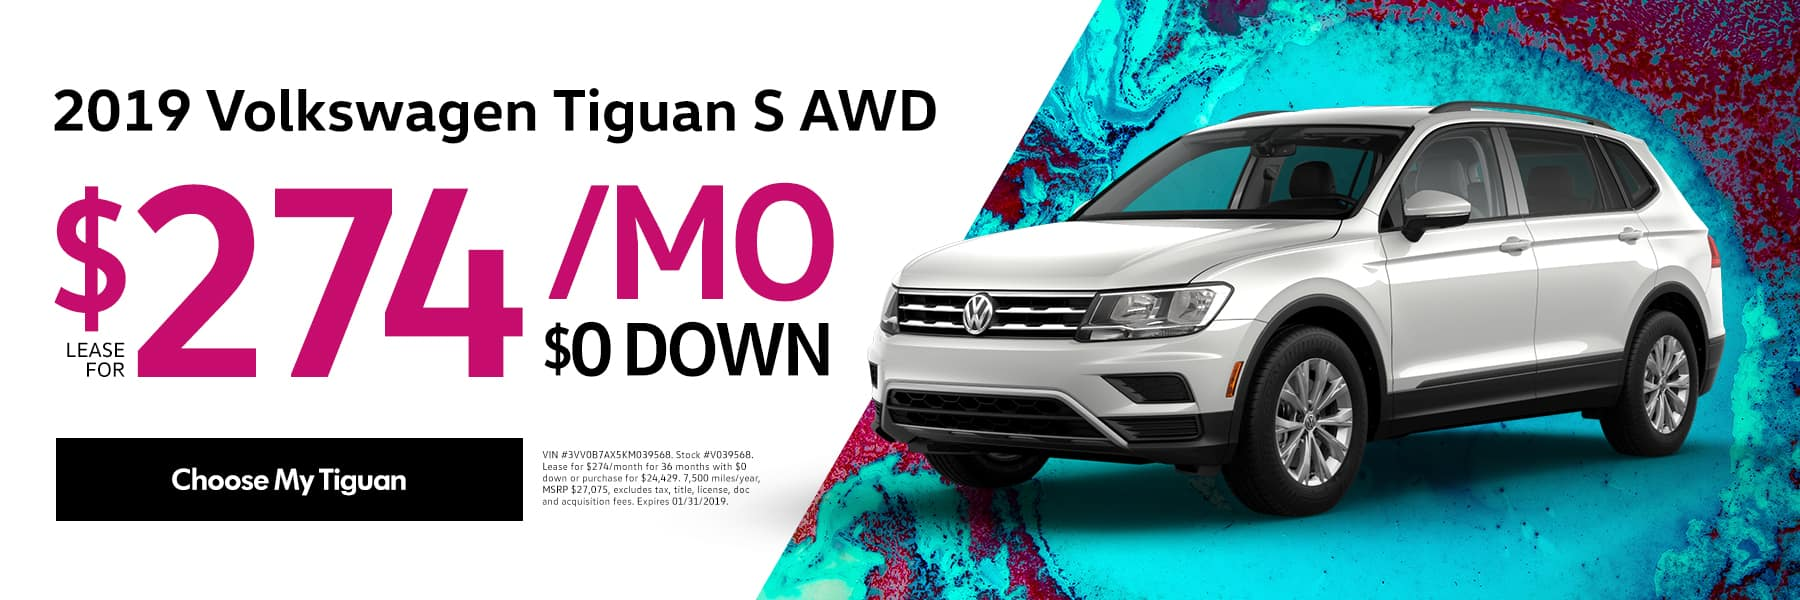 Lease the 2019 Volkswagen Tiguan S AWD for $274/month for 36 months - Choose My Tiguan